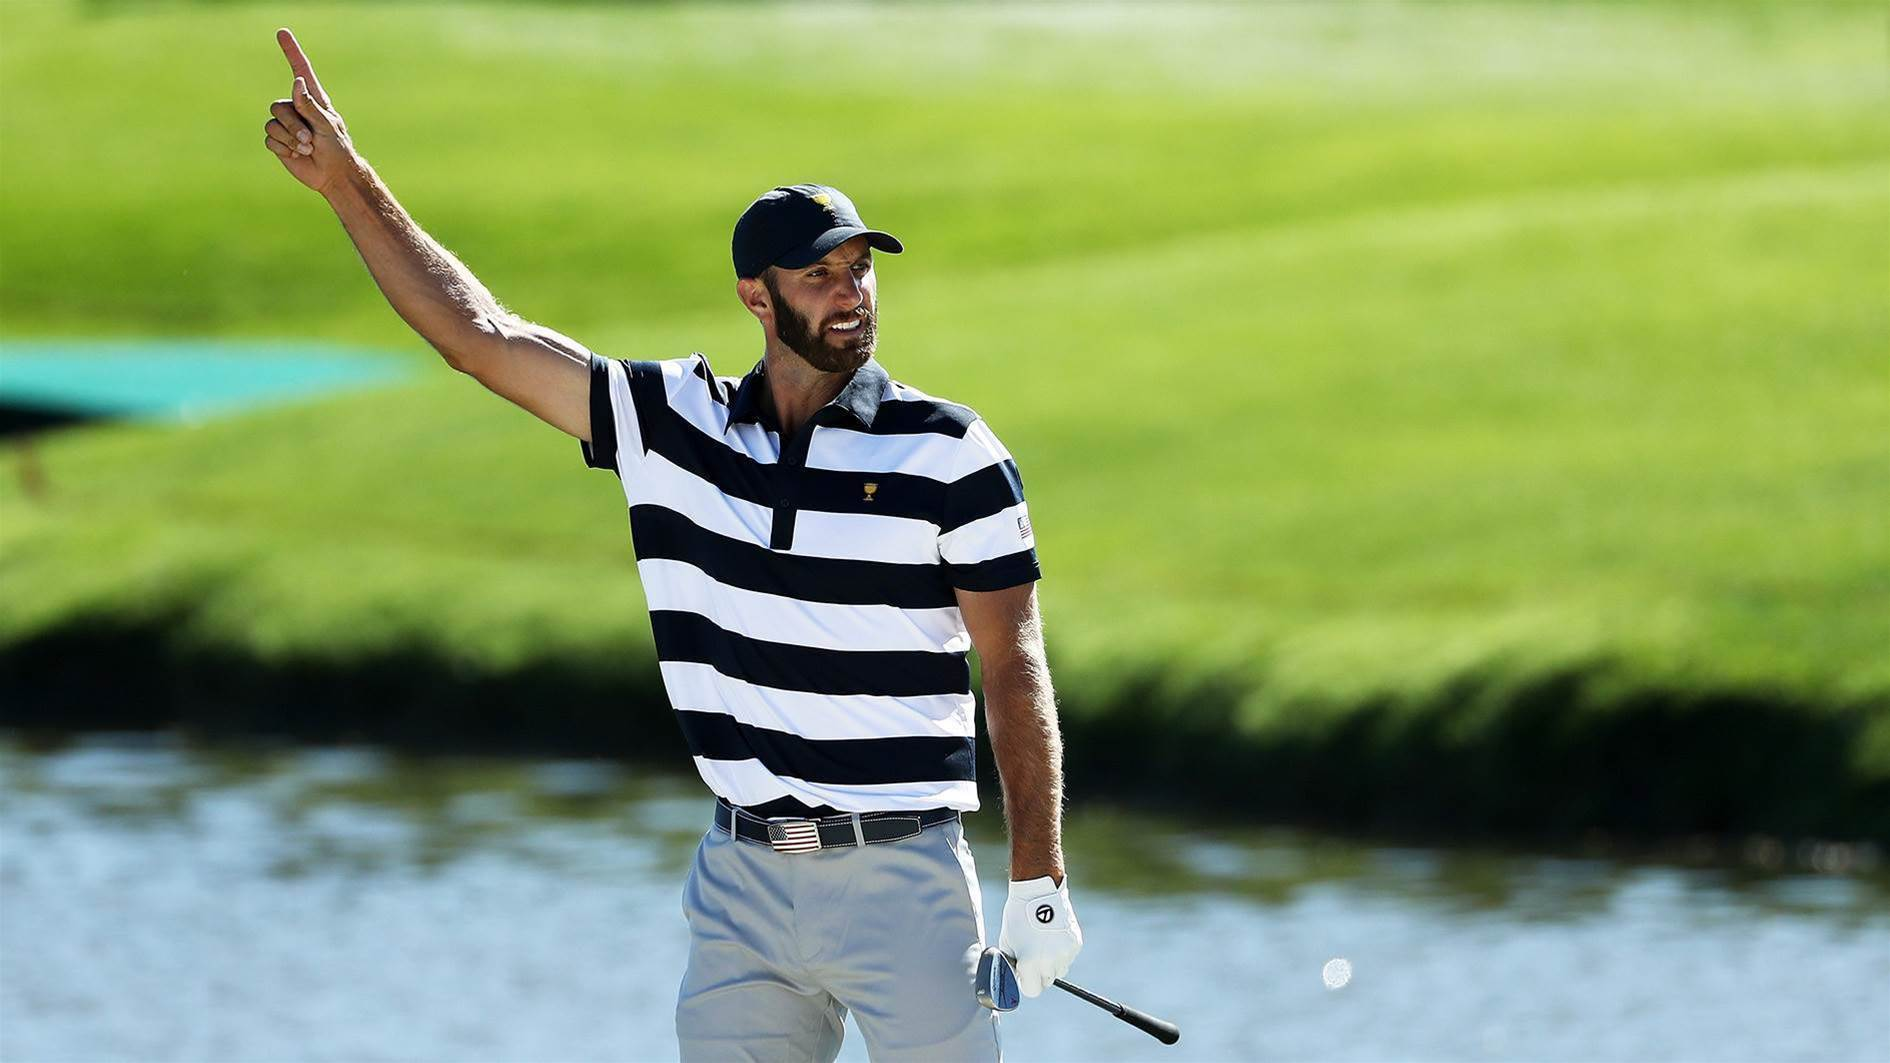 PRESIDENTS CUP: USA take day 1 honours